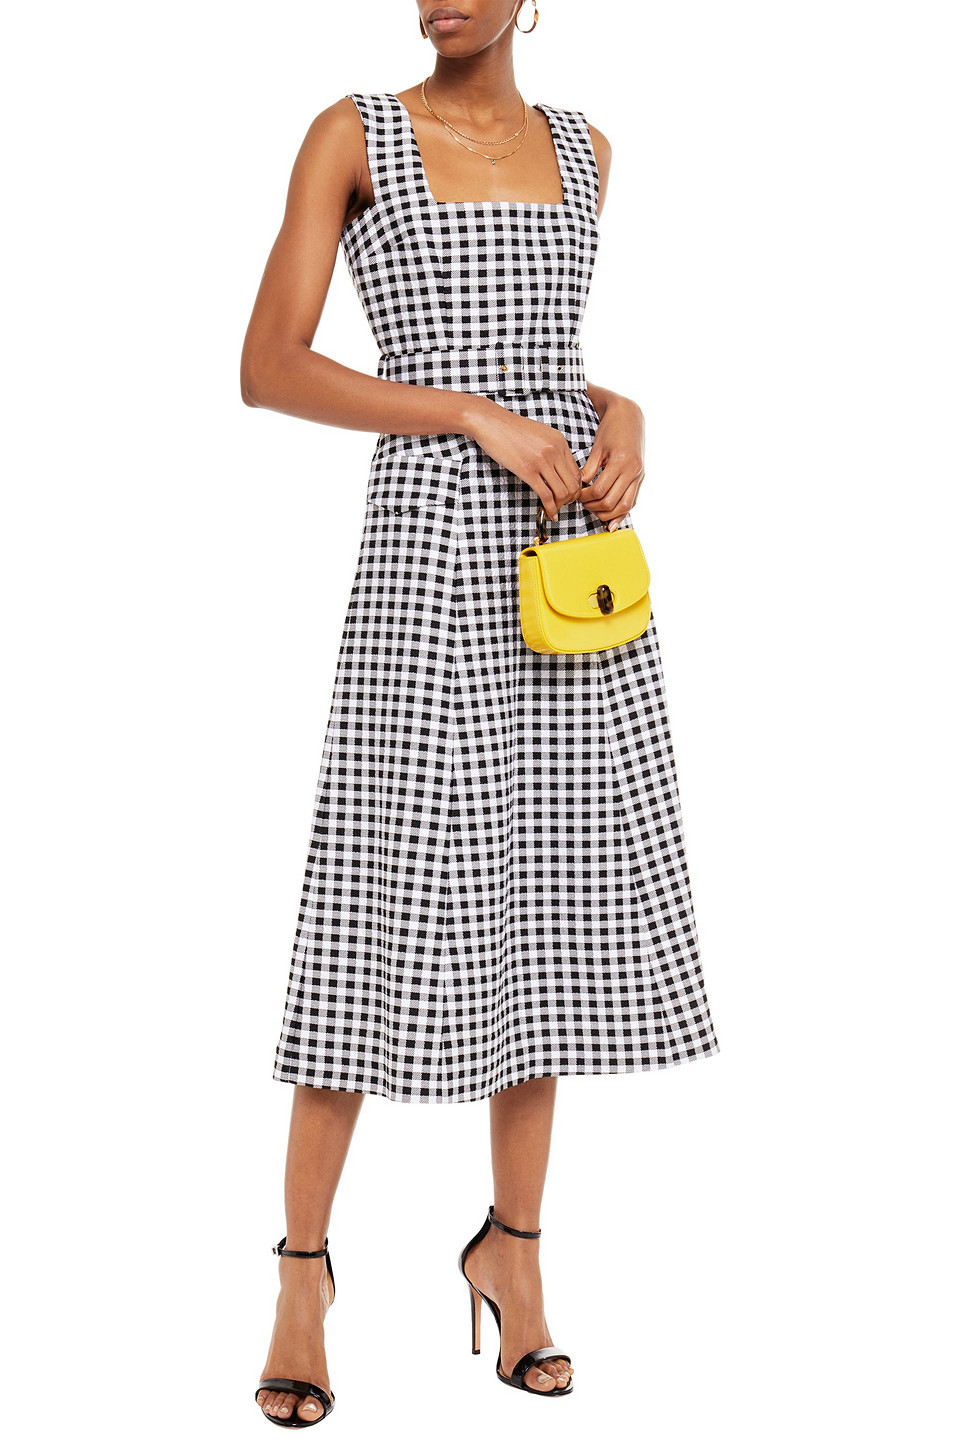 Emilia Wickstead | Emilia Wickstead Woman Petra Belted Gingham Cloque Midi Dress Black | Clouty